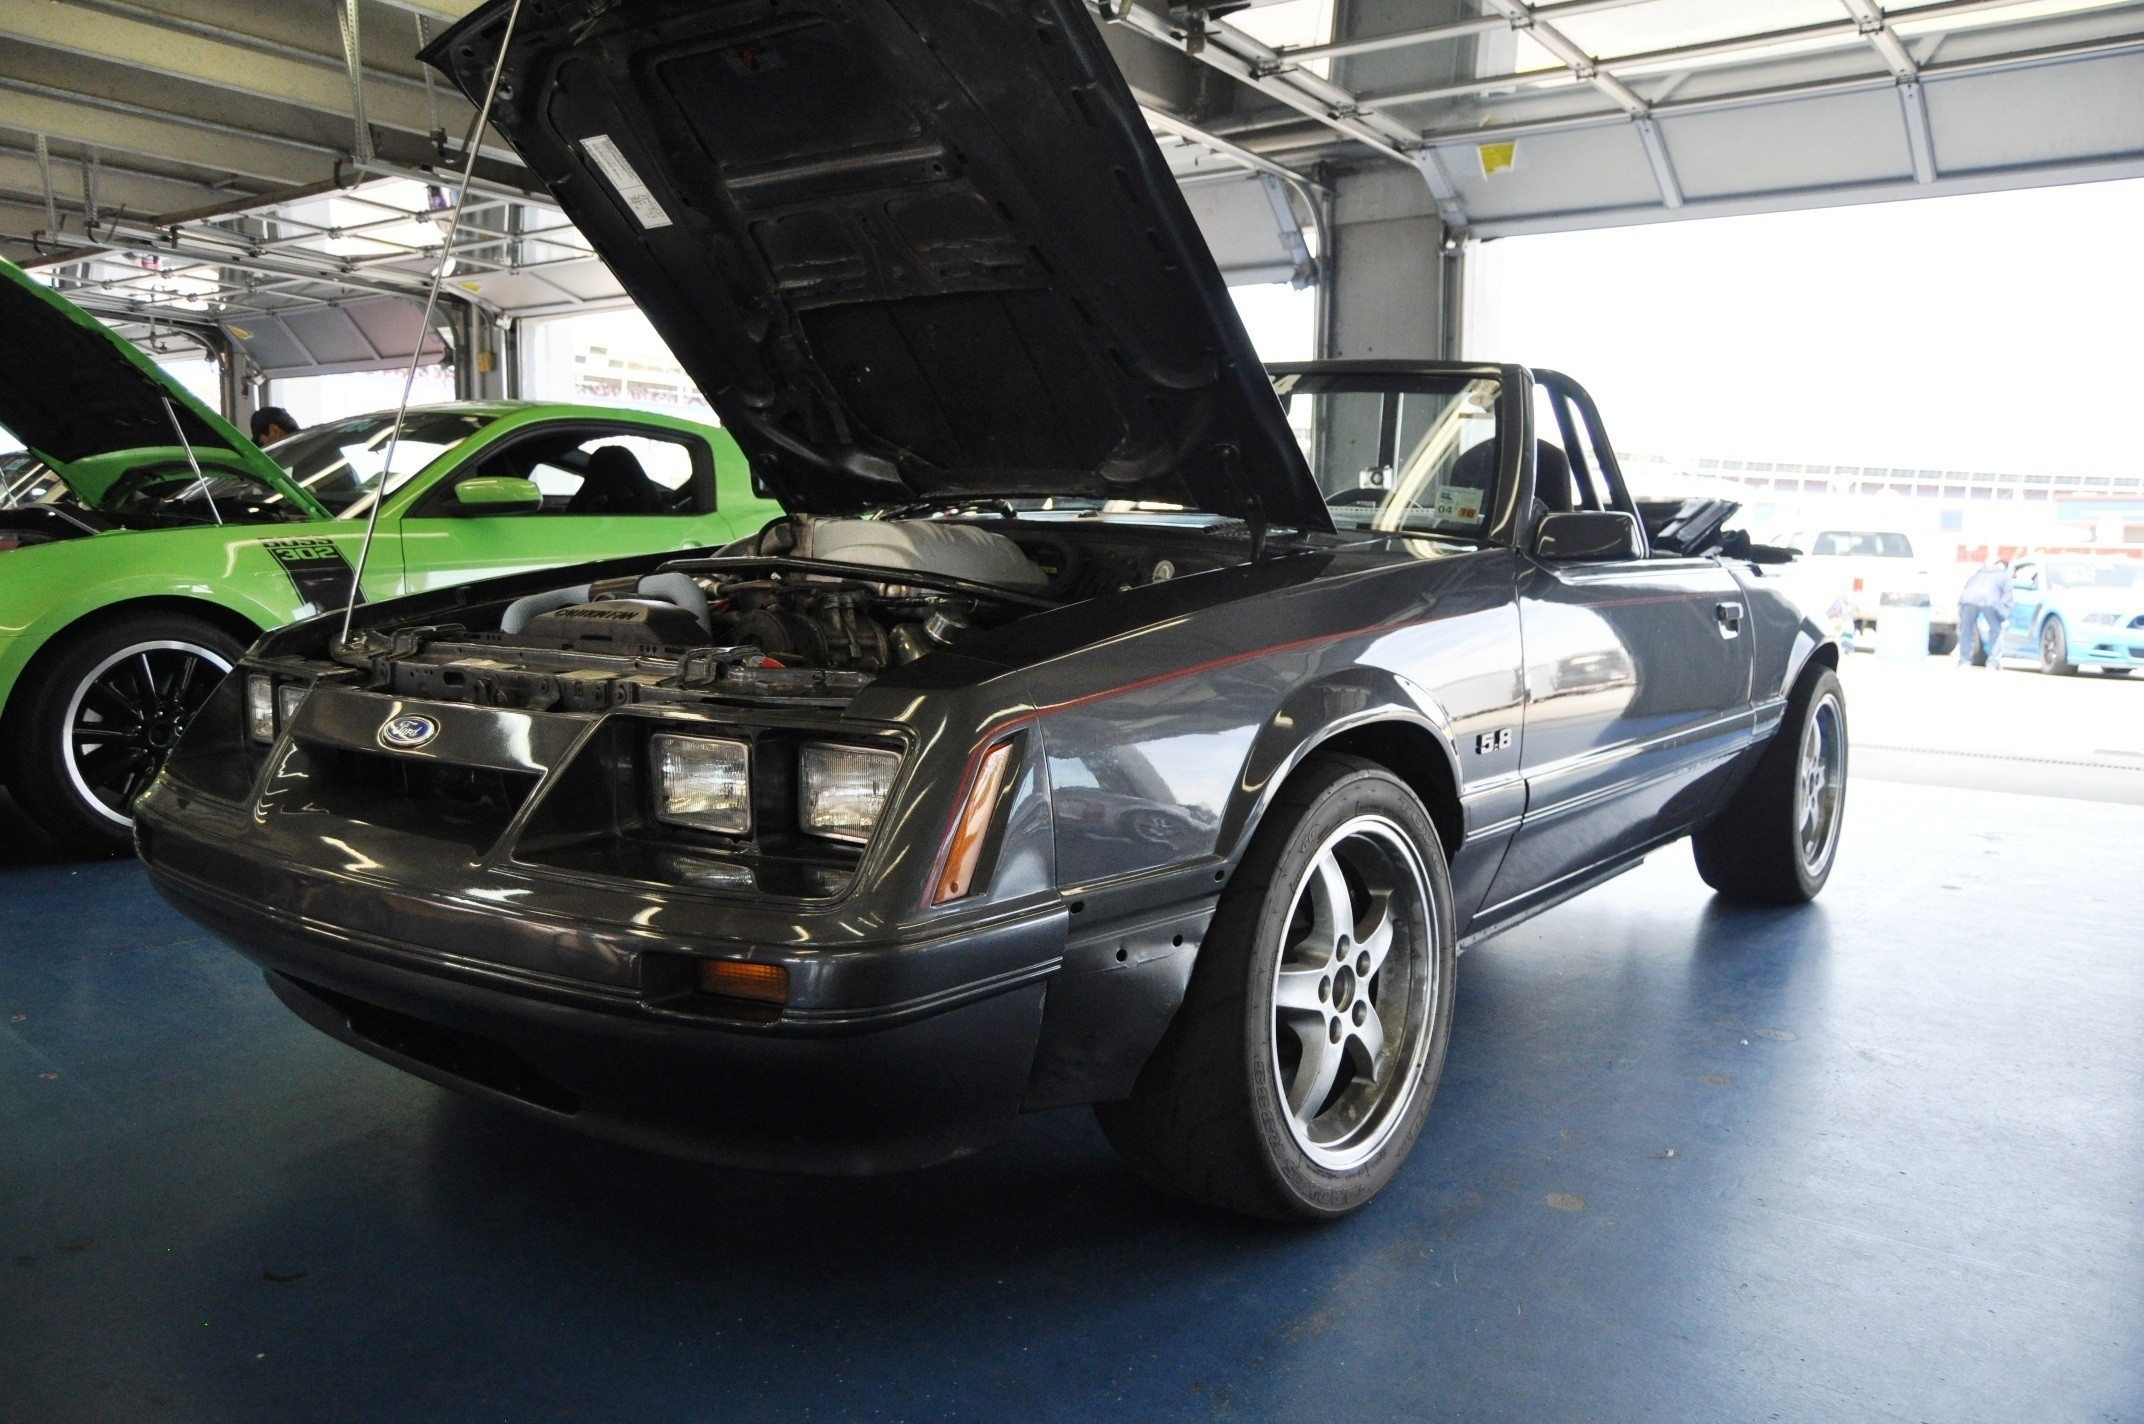 Race Prepped 1986 Mustang GT Convertible